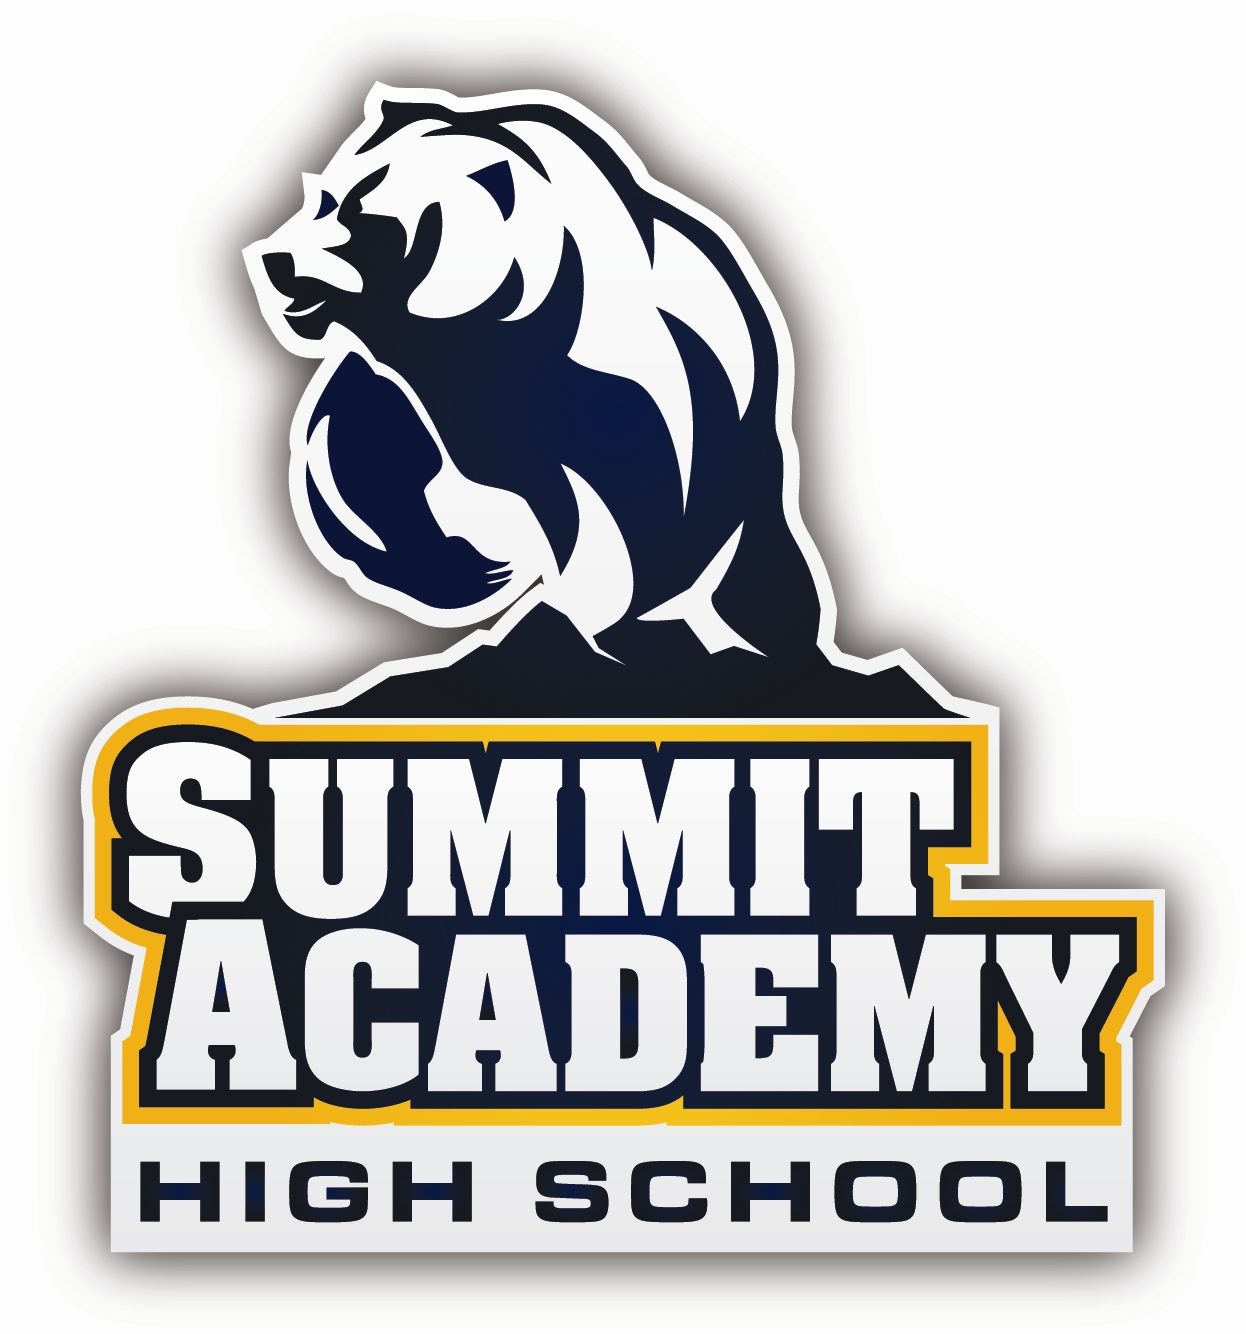 Summit 20hs 20logo 20stacked 20with 20whitebg